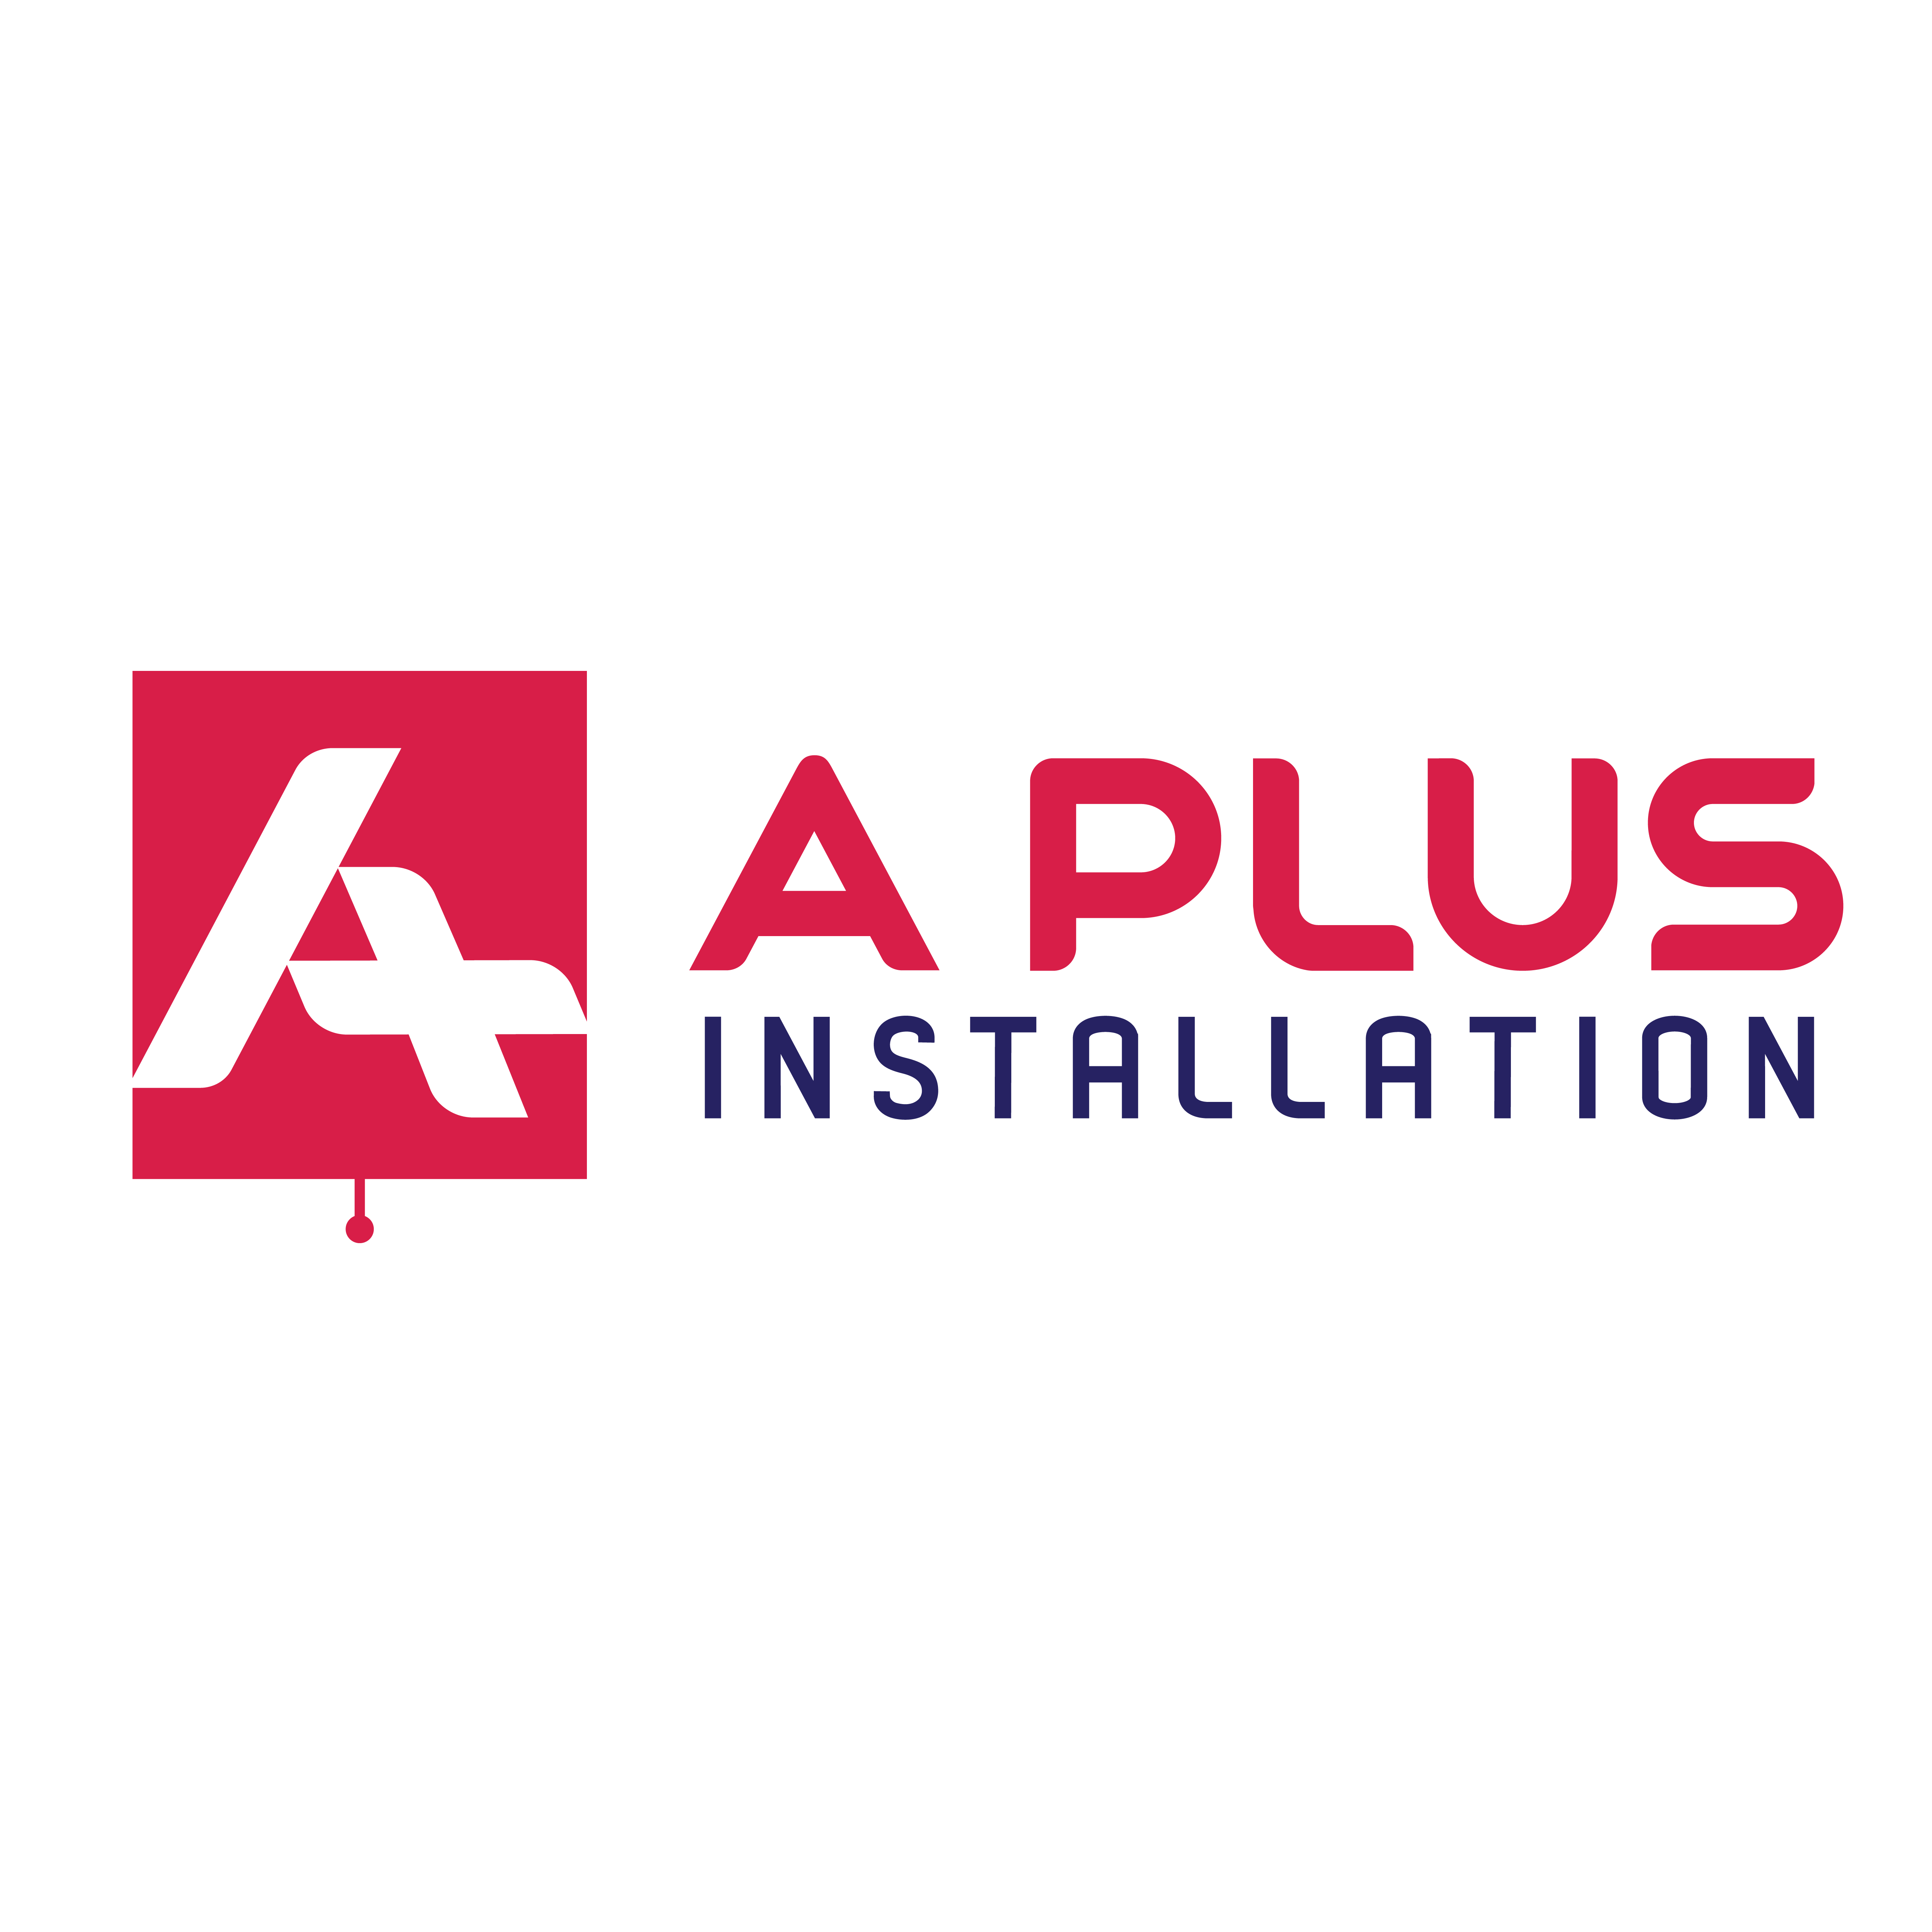 A Plus Installation Blinds & Shades